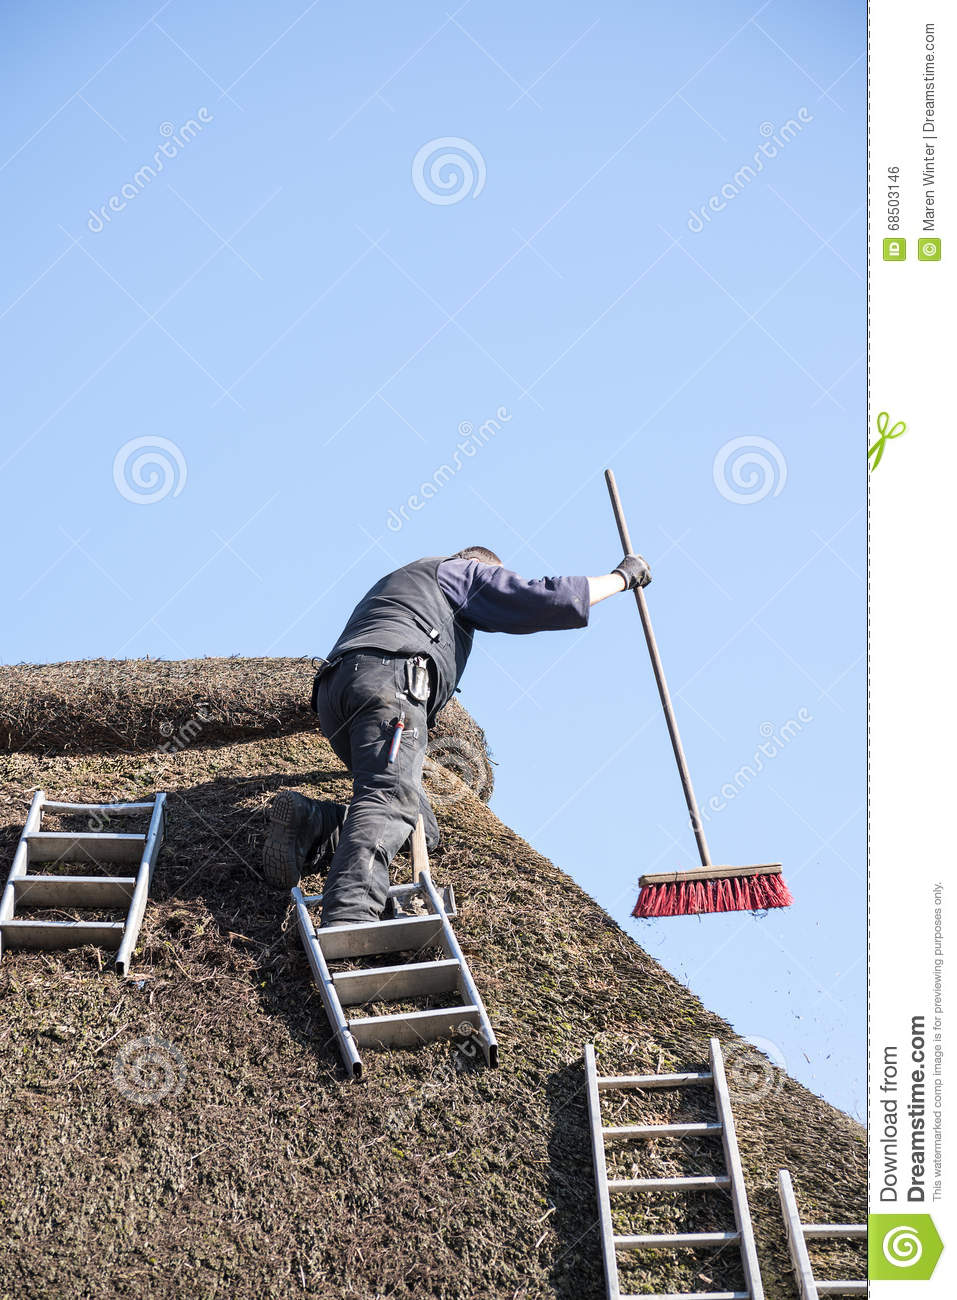 Roofer With Ladders On A Thatched Roof To Remove Moss And